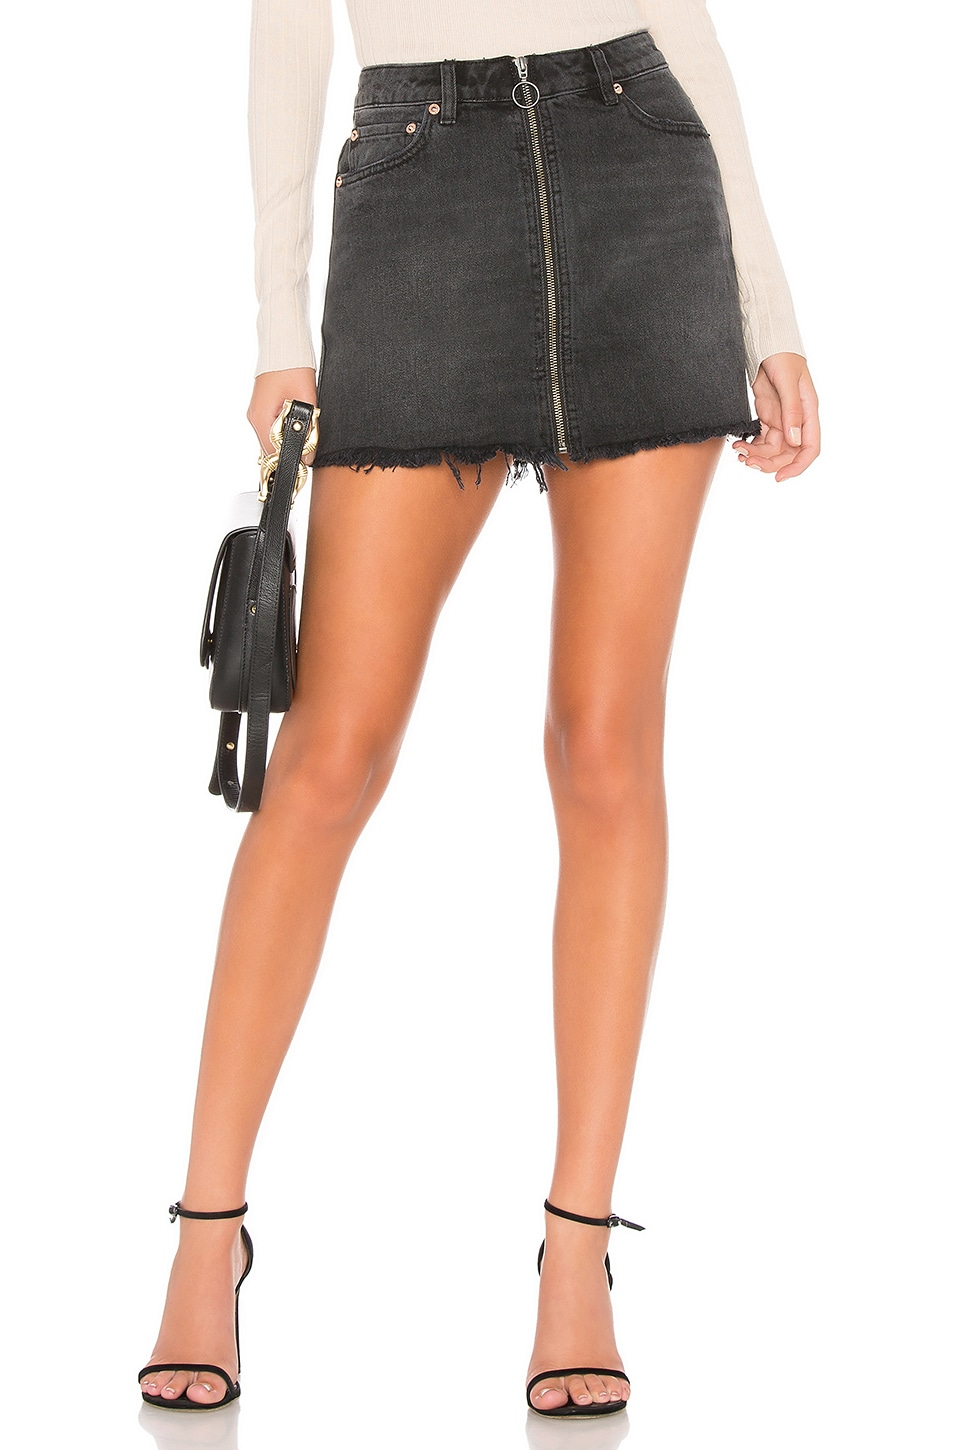 Free People Zip It Up Mini Skirt in Black